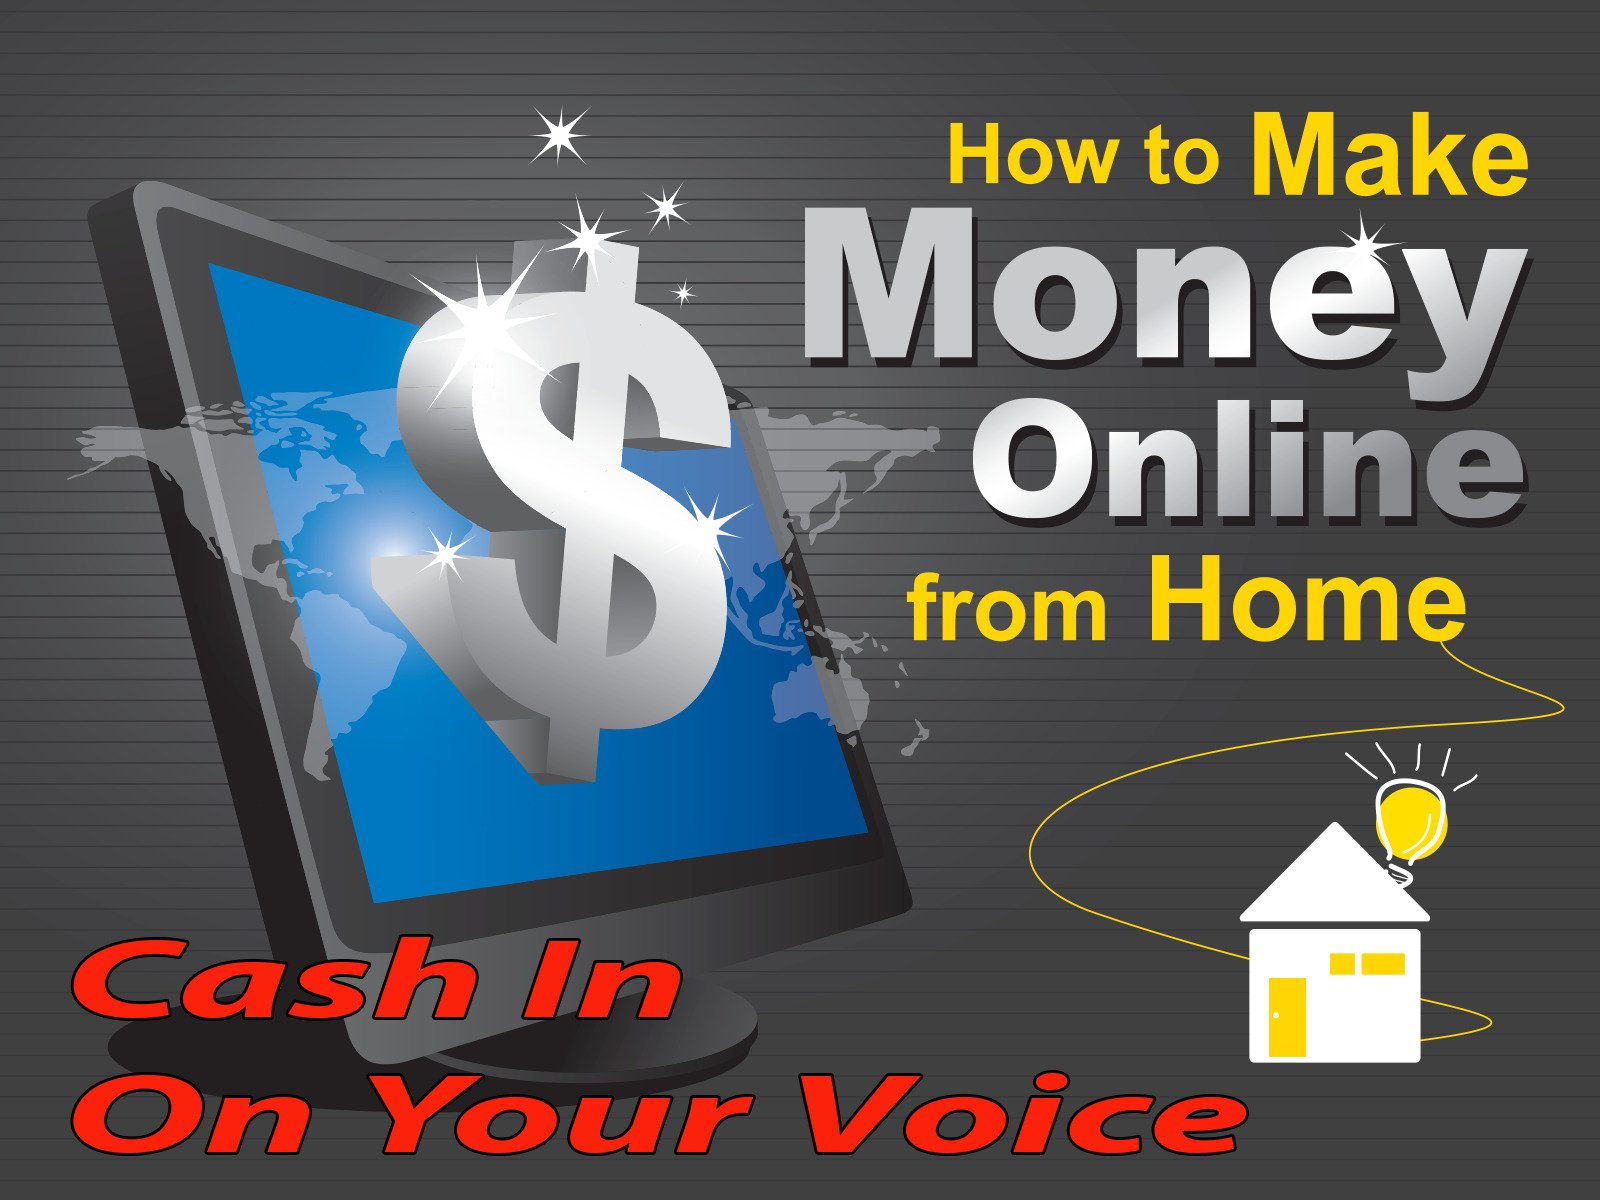 Make Money Online - Season 1